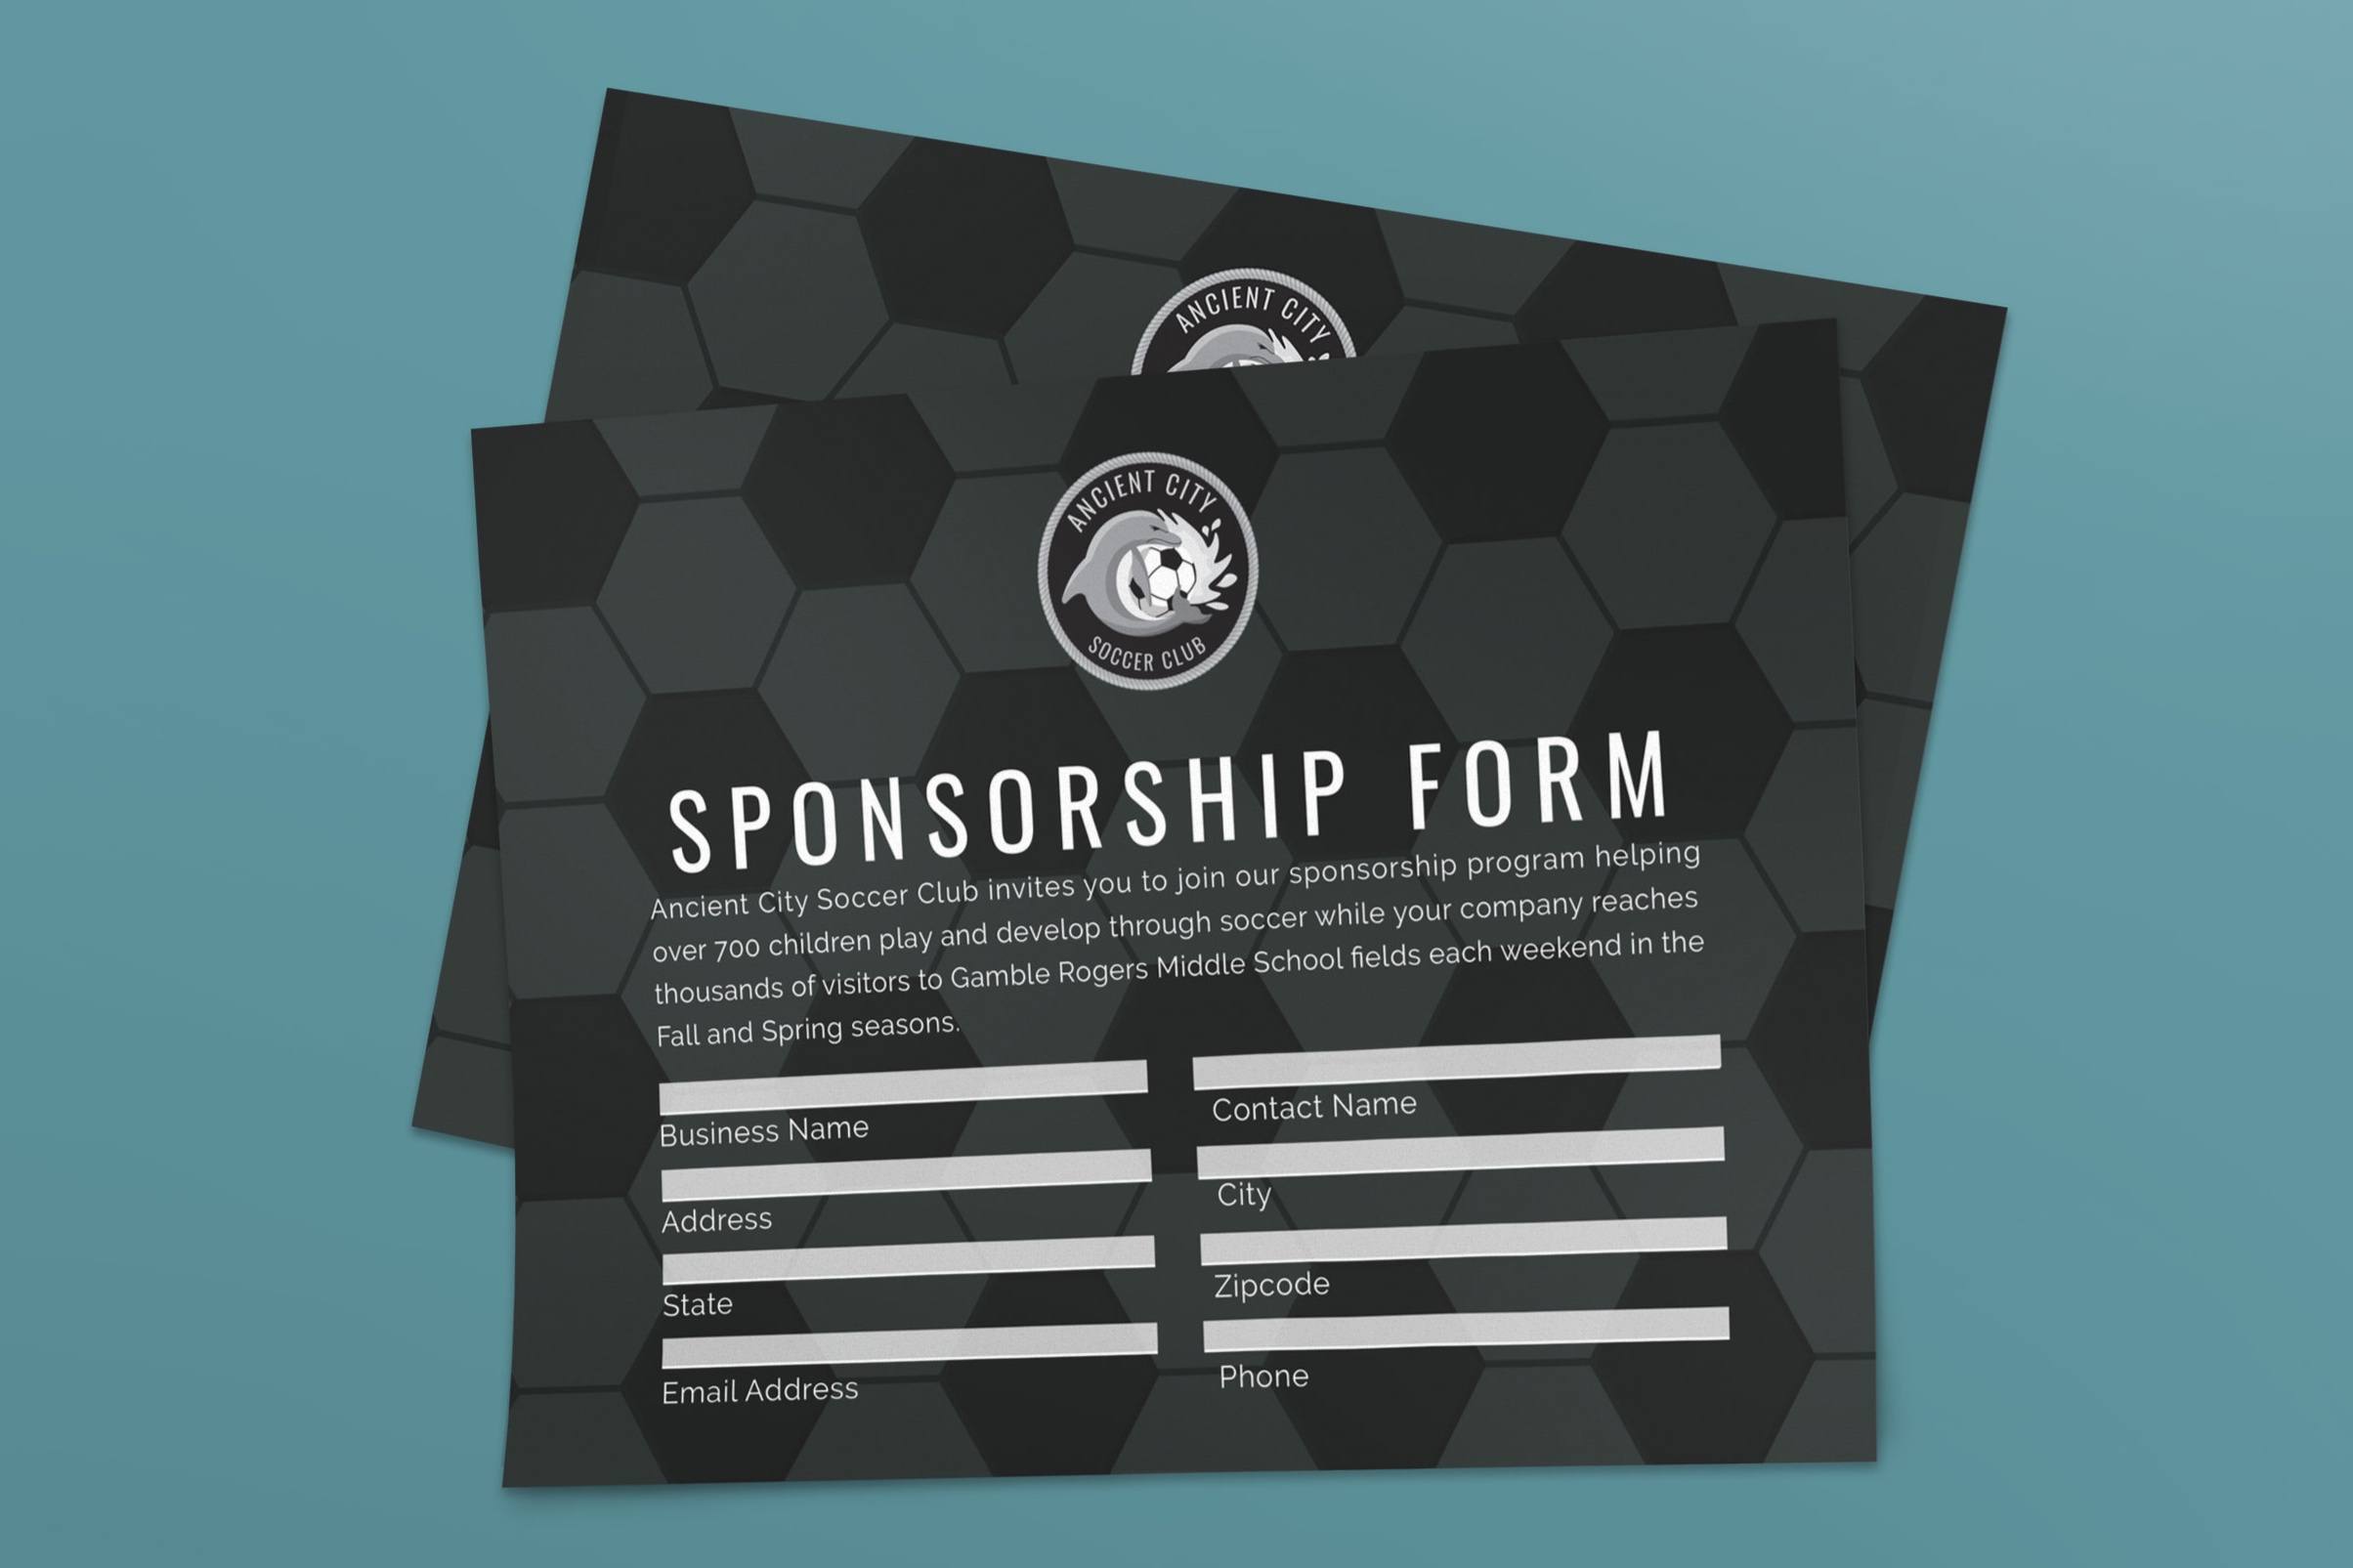 Form for possible sponsors to complete and send back.